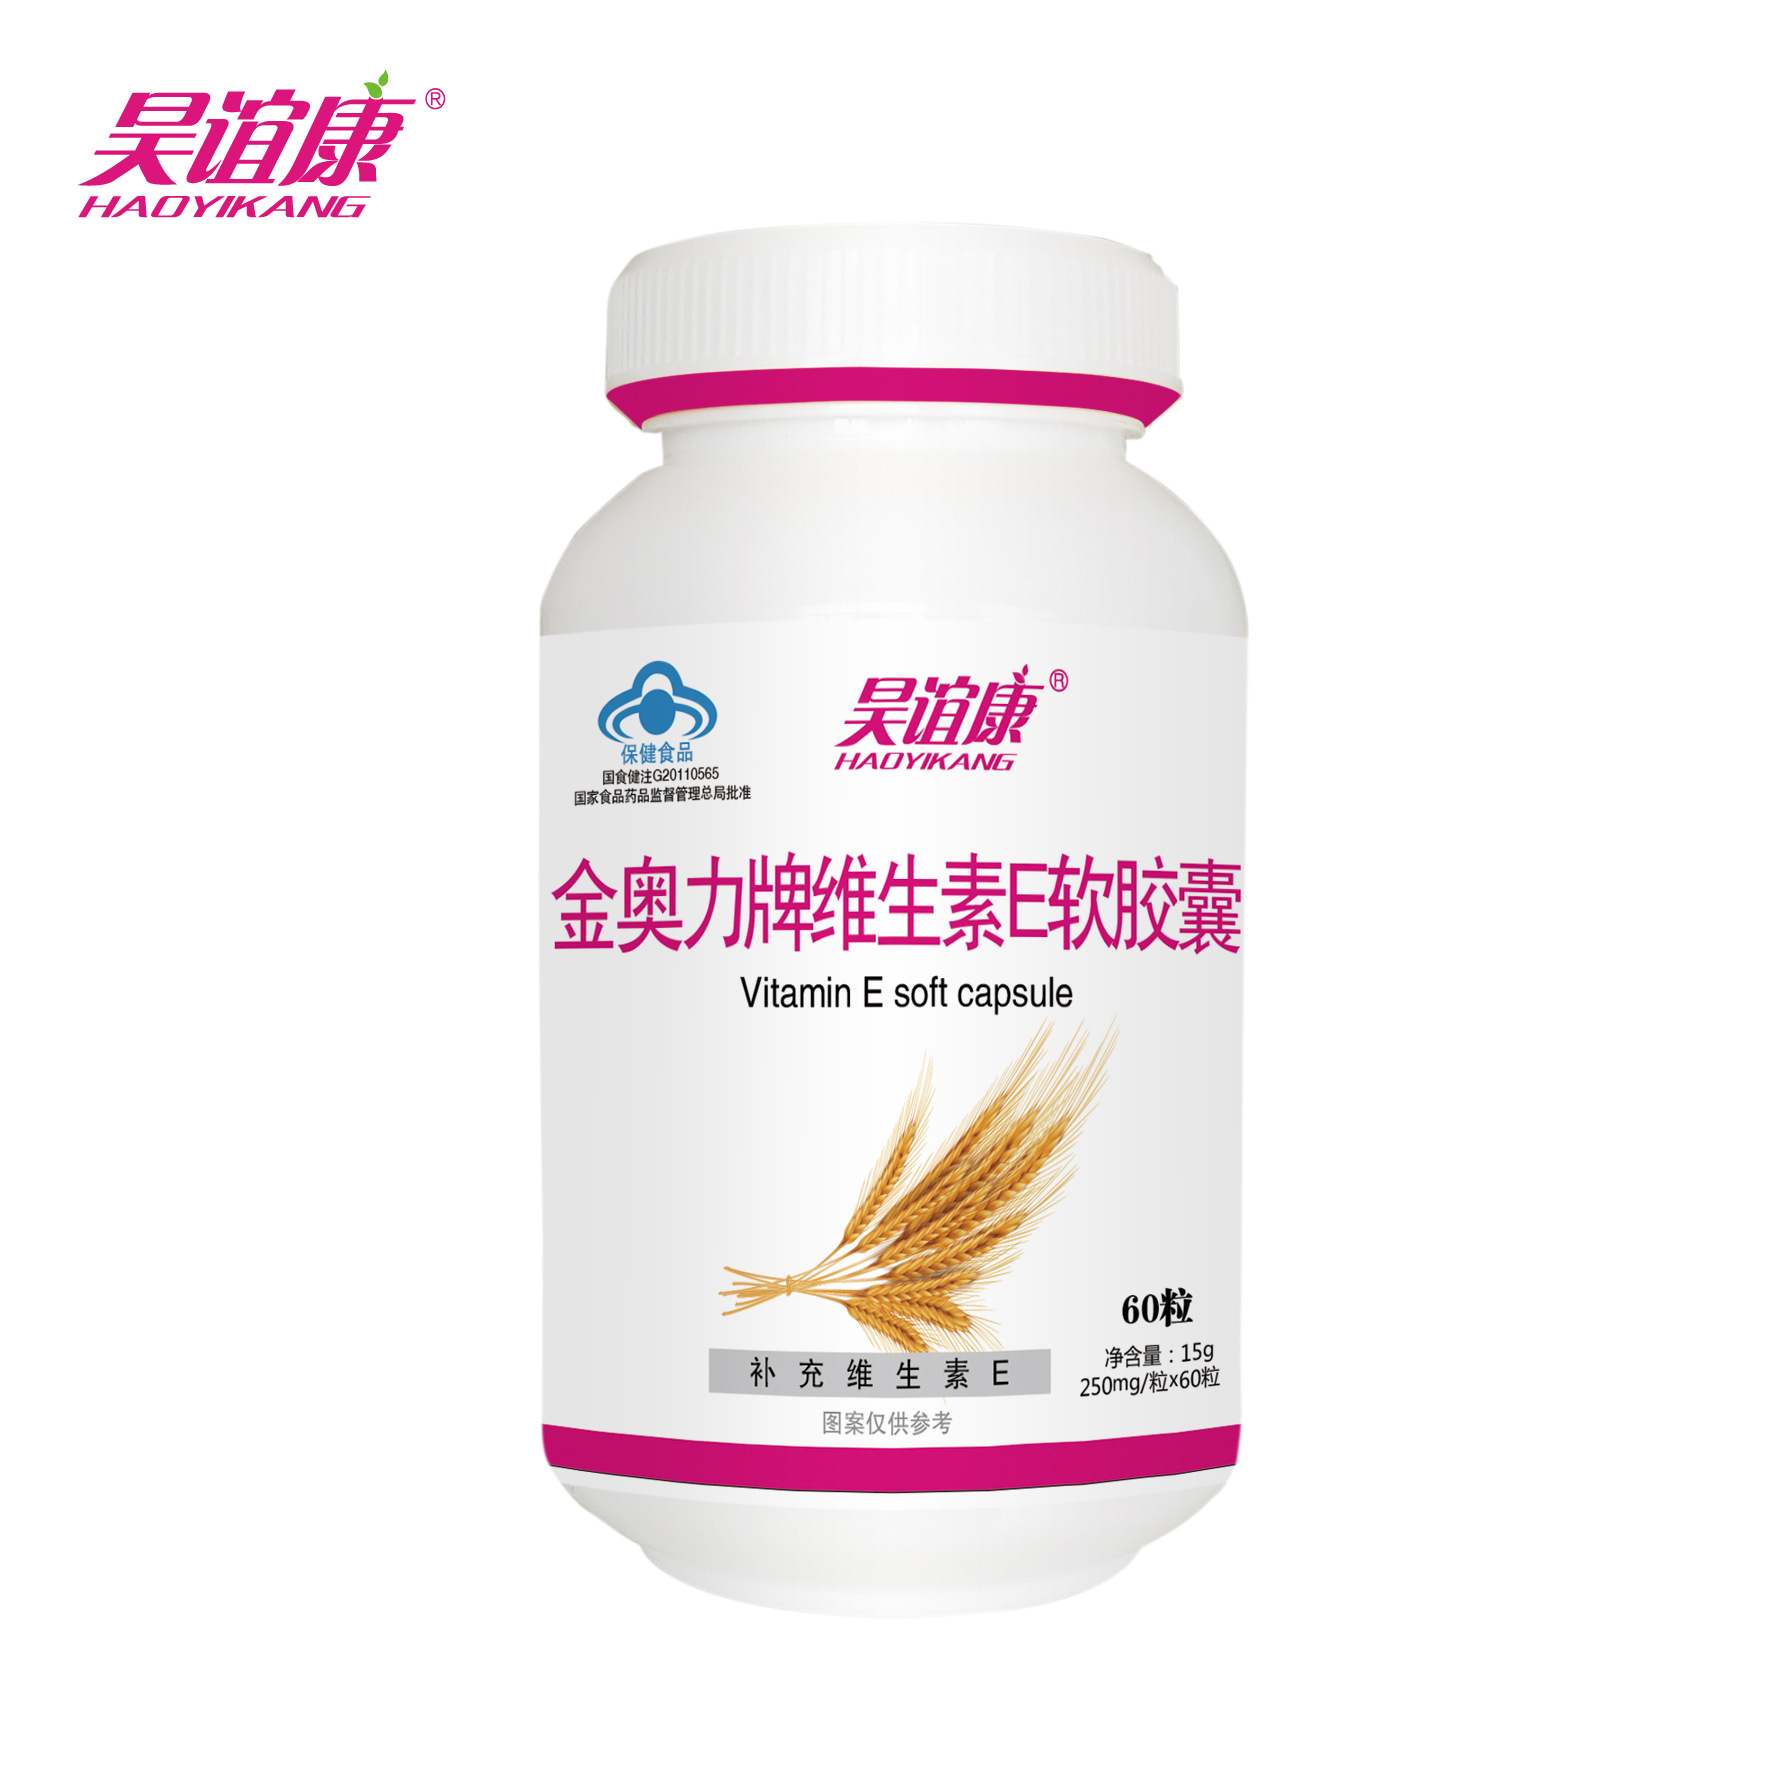 Hao Yikang-jinaoli Brand Vitamin E Soft Capsule Supplement Vitamin E Health Care Products Wholesale One Piece Unisex 24 Months